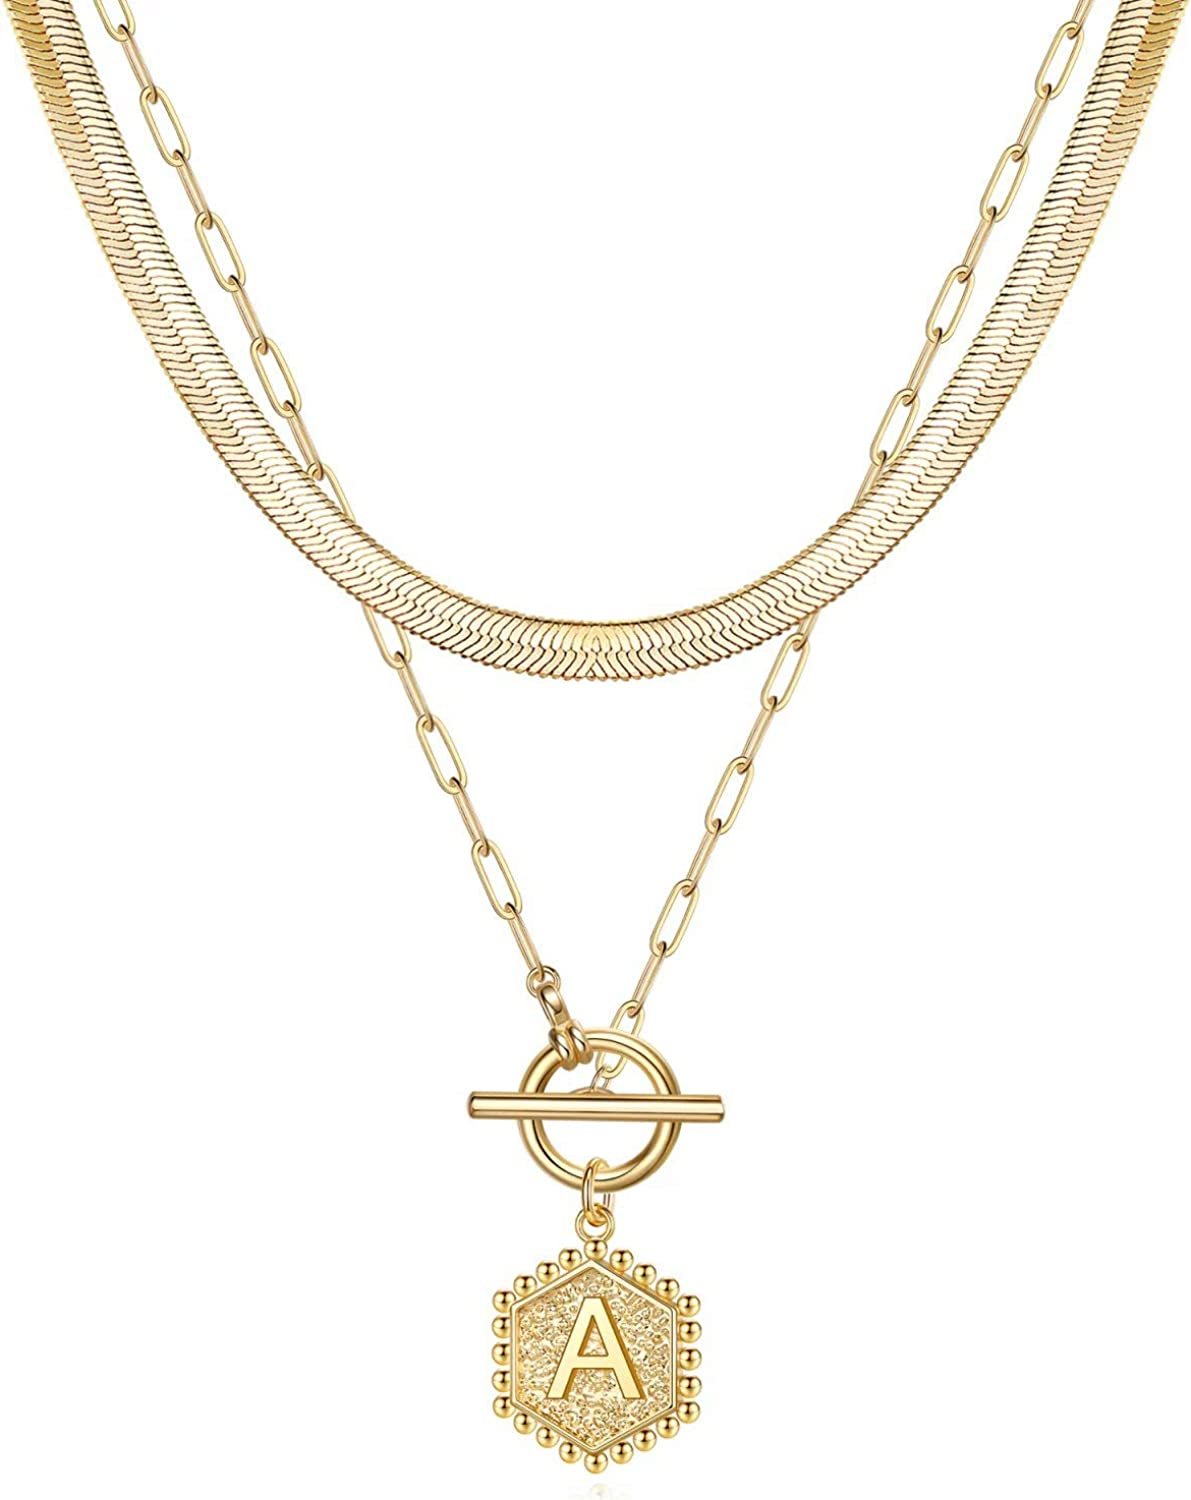 Yesteel Gold Layered Initial Necklace for Women, 14K Gold Plated Hexagon Initial Pendant Necklace Herringbone Toggle Clasp Paperclip Chain Necklace for Women Girls Jewelry Gifts